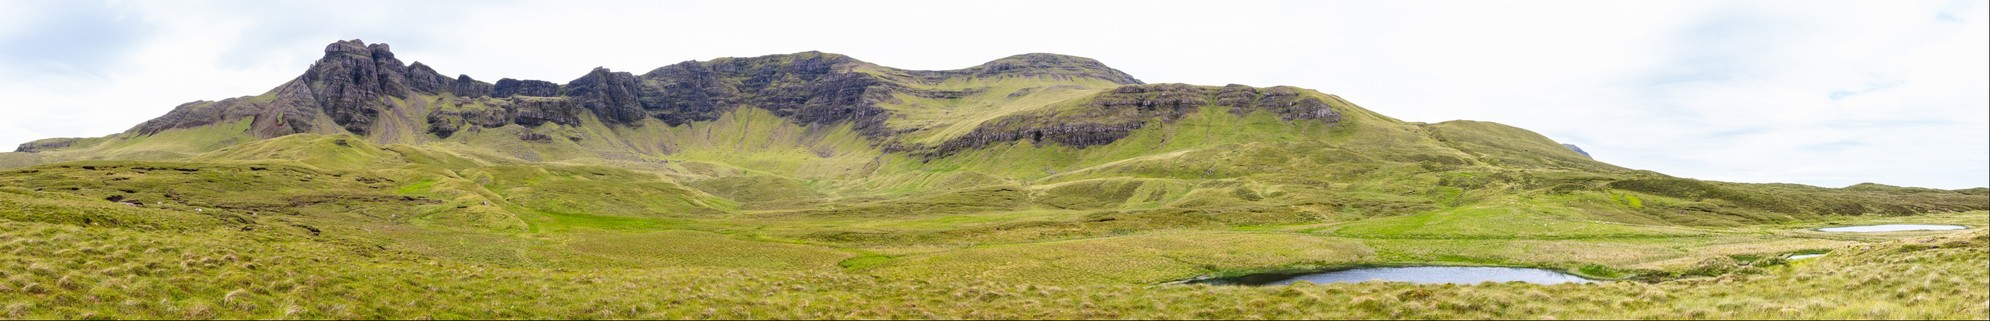 Trotternish Ridge from Loch Cuithir